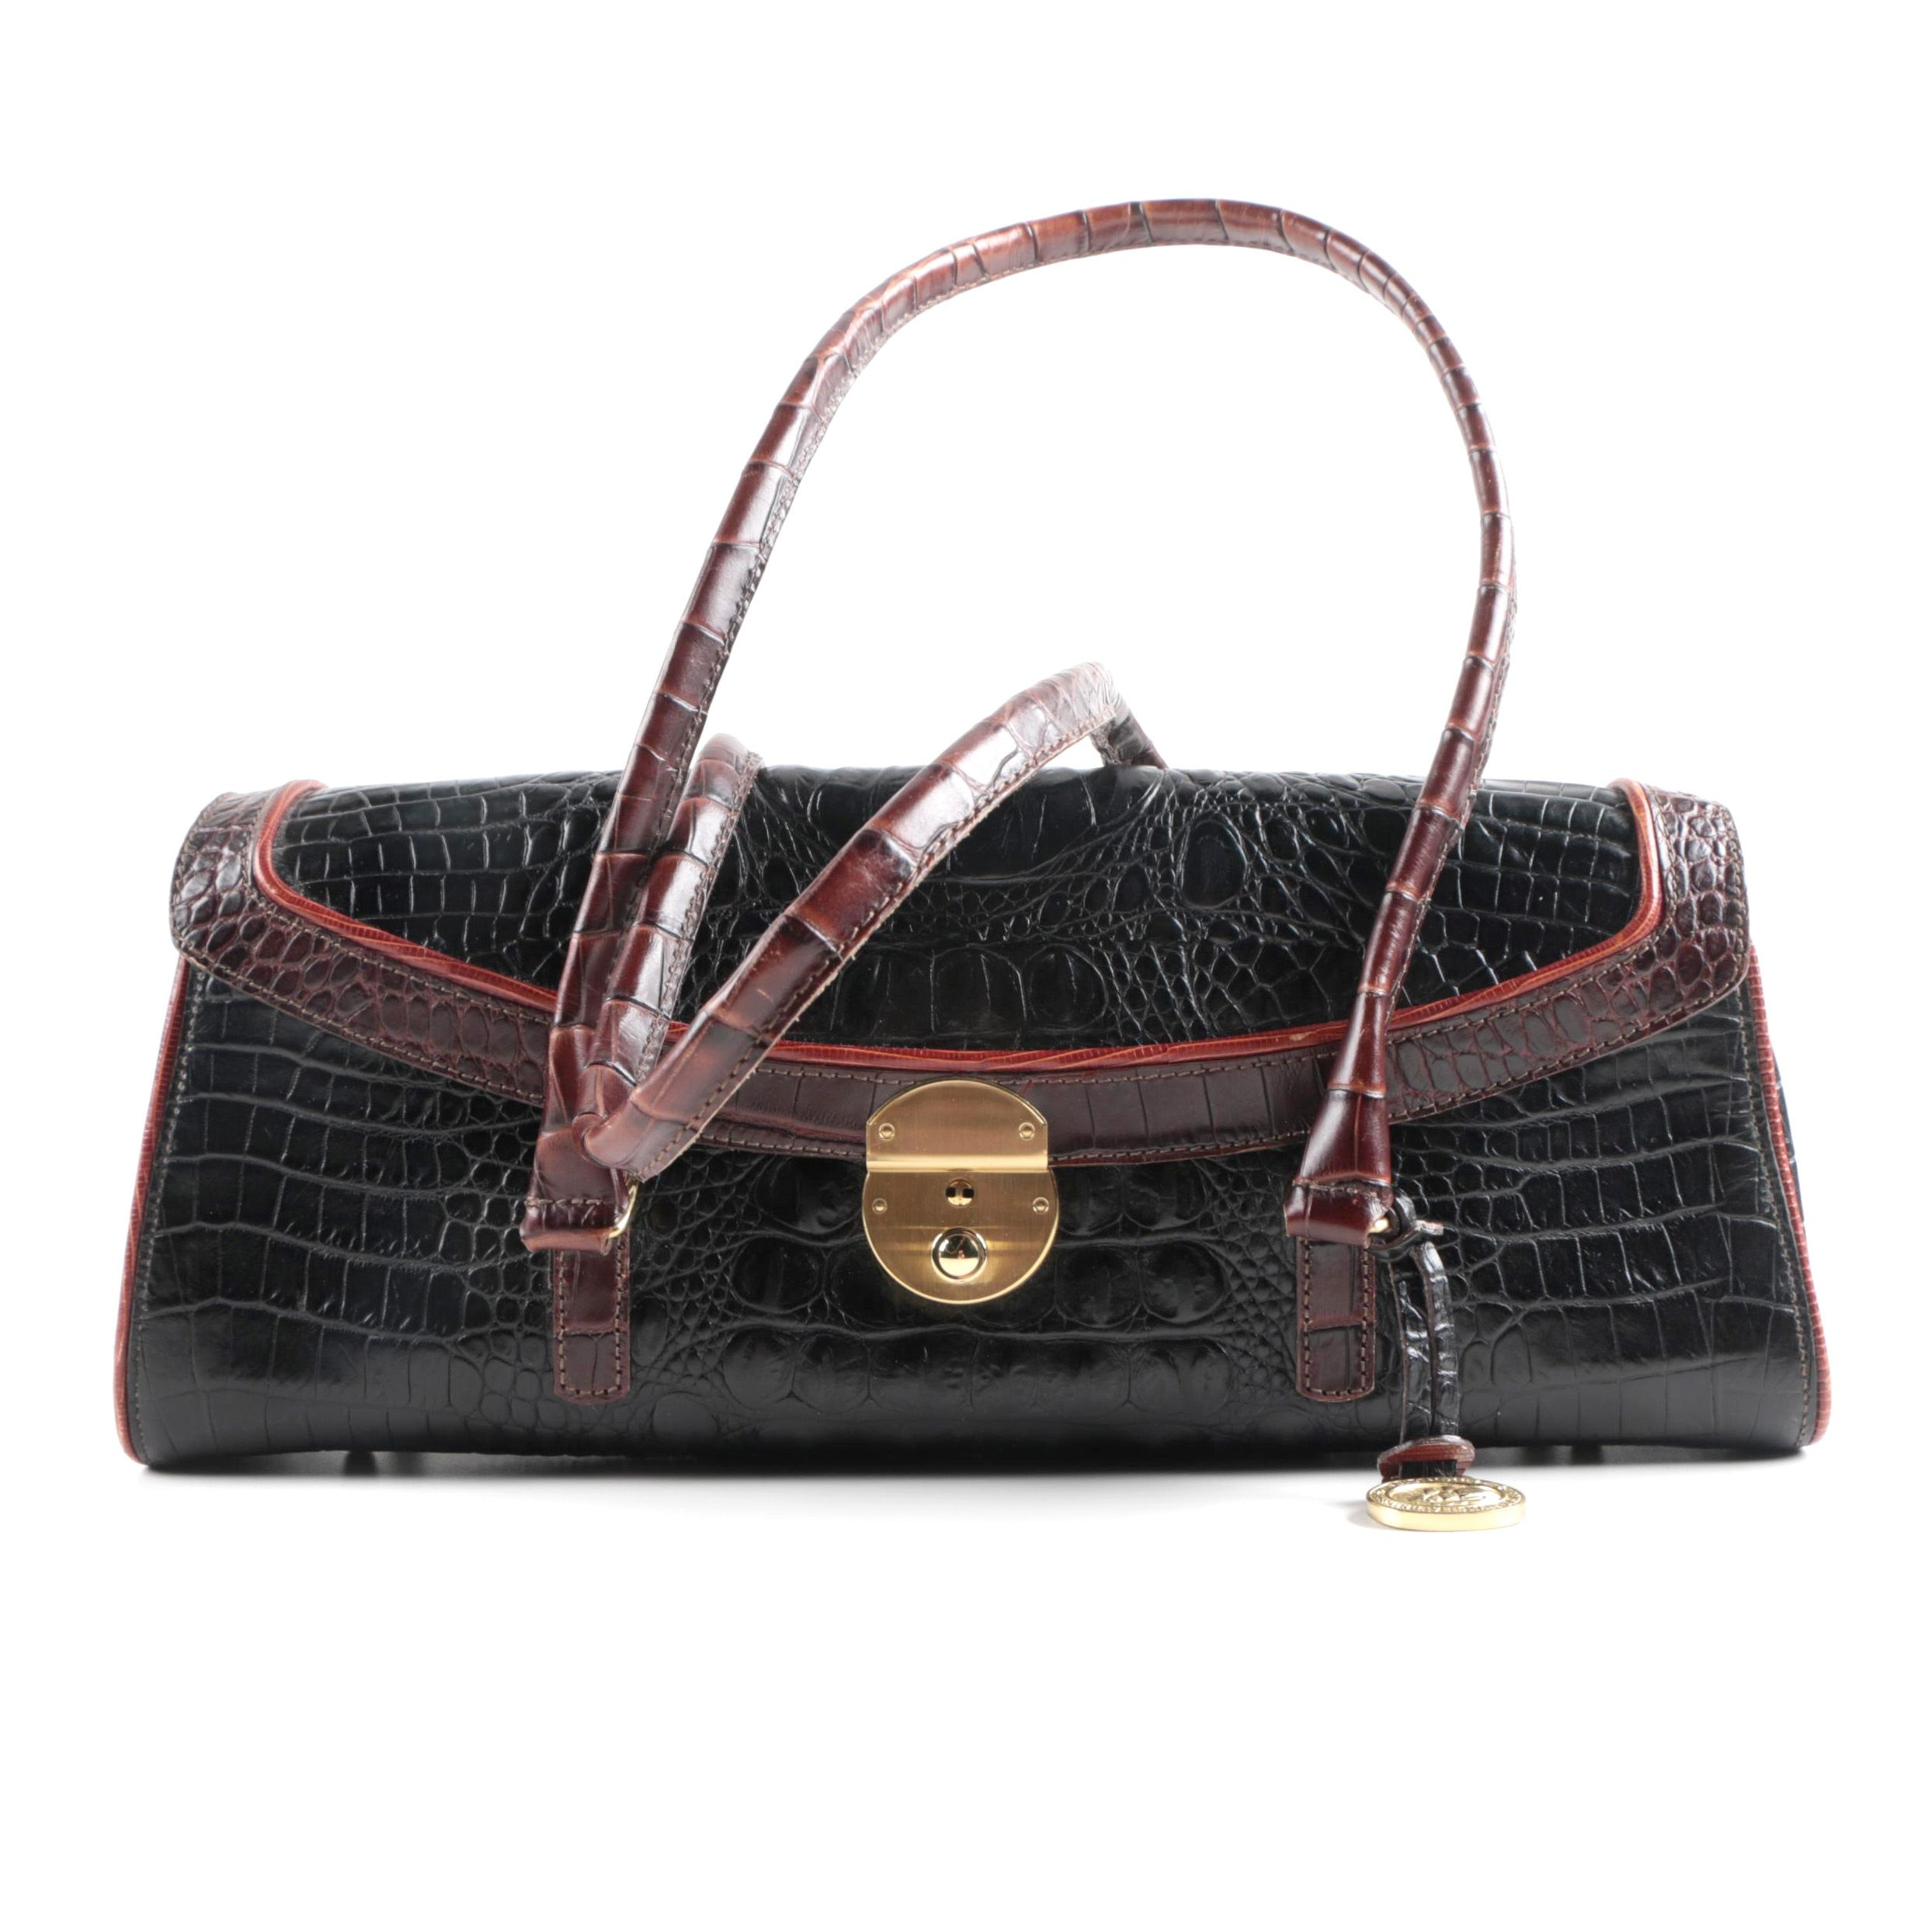 Brahmin Leather Baguette Handbag